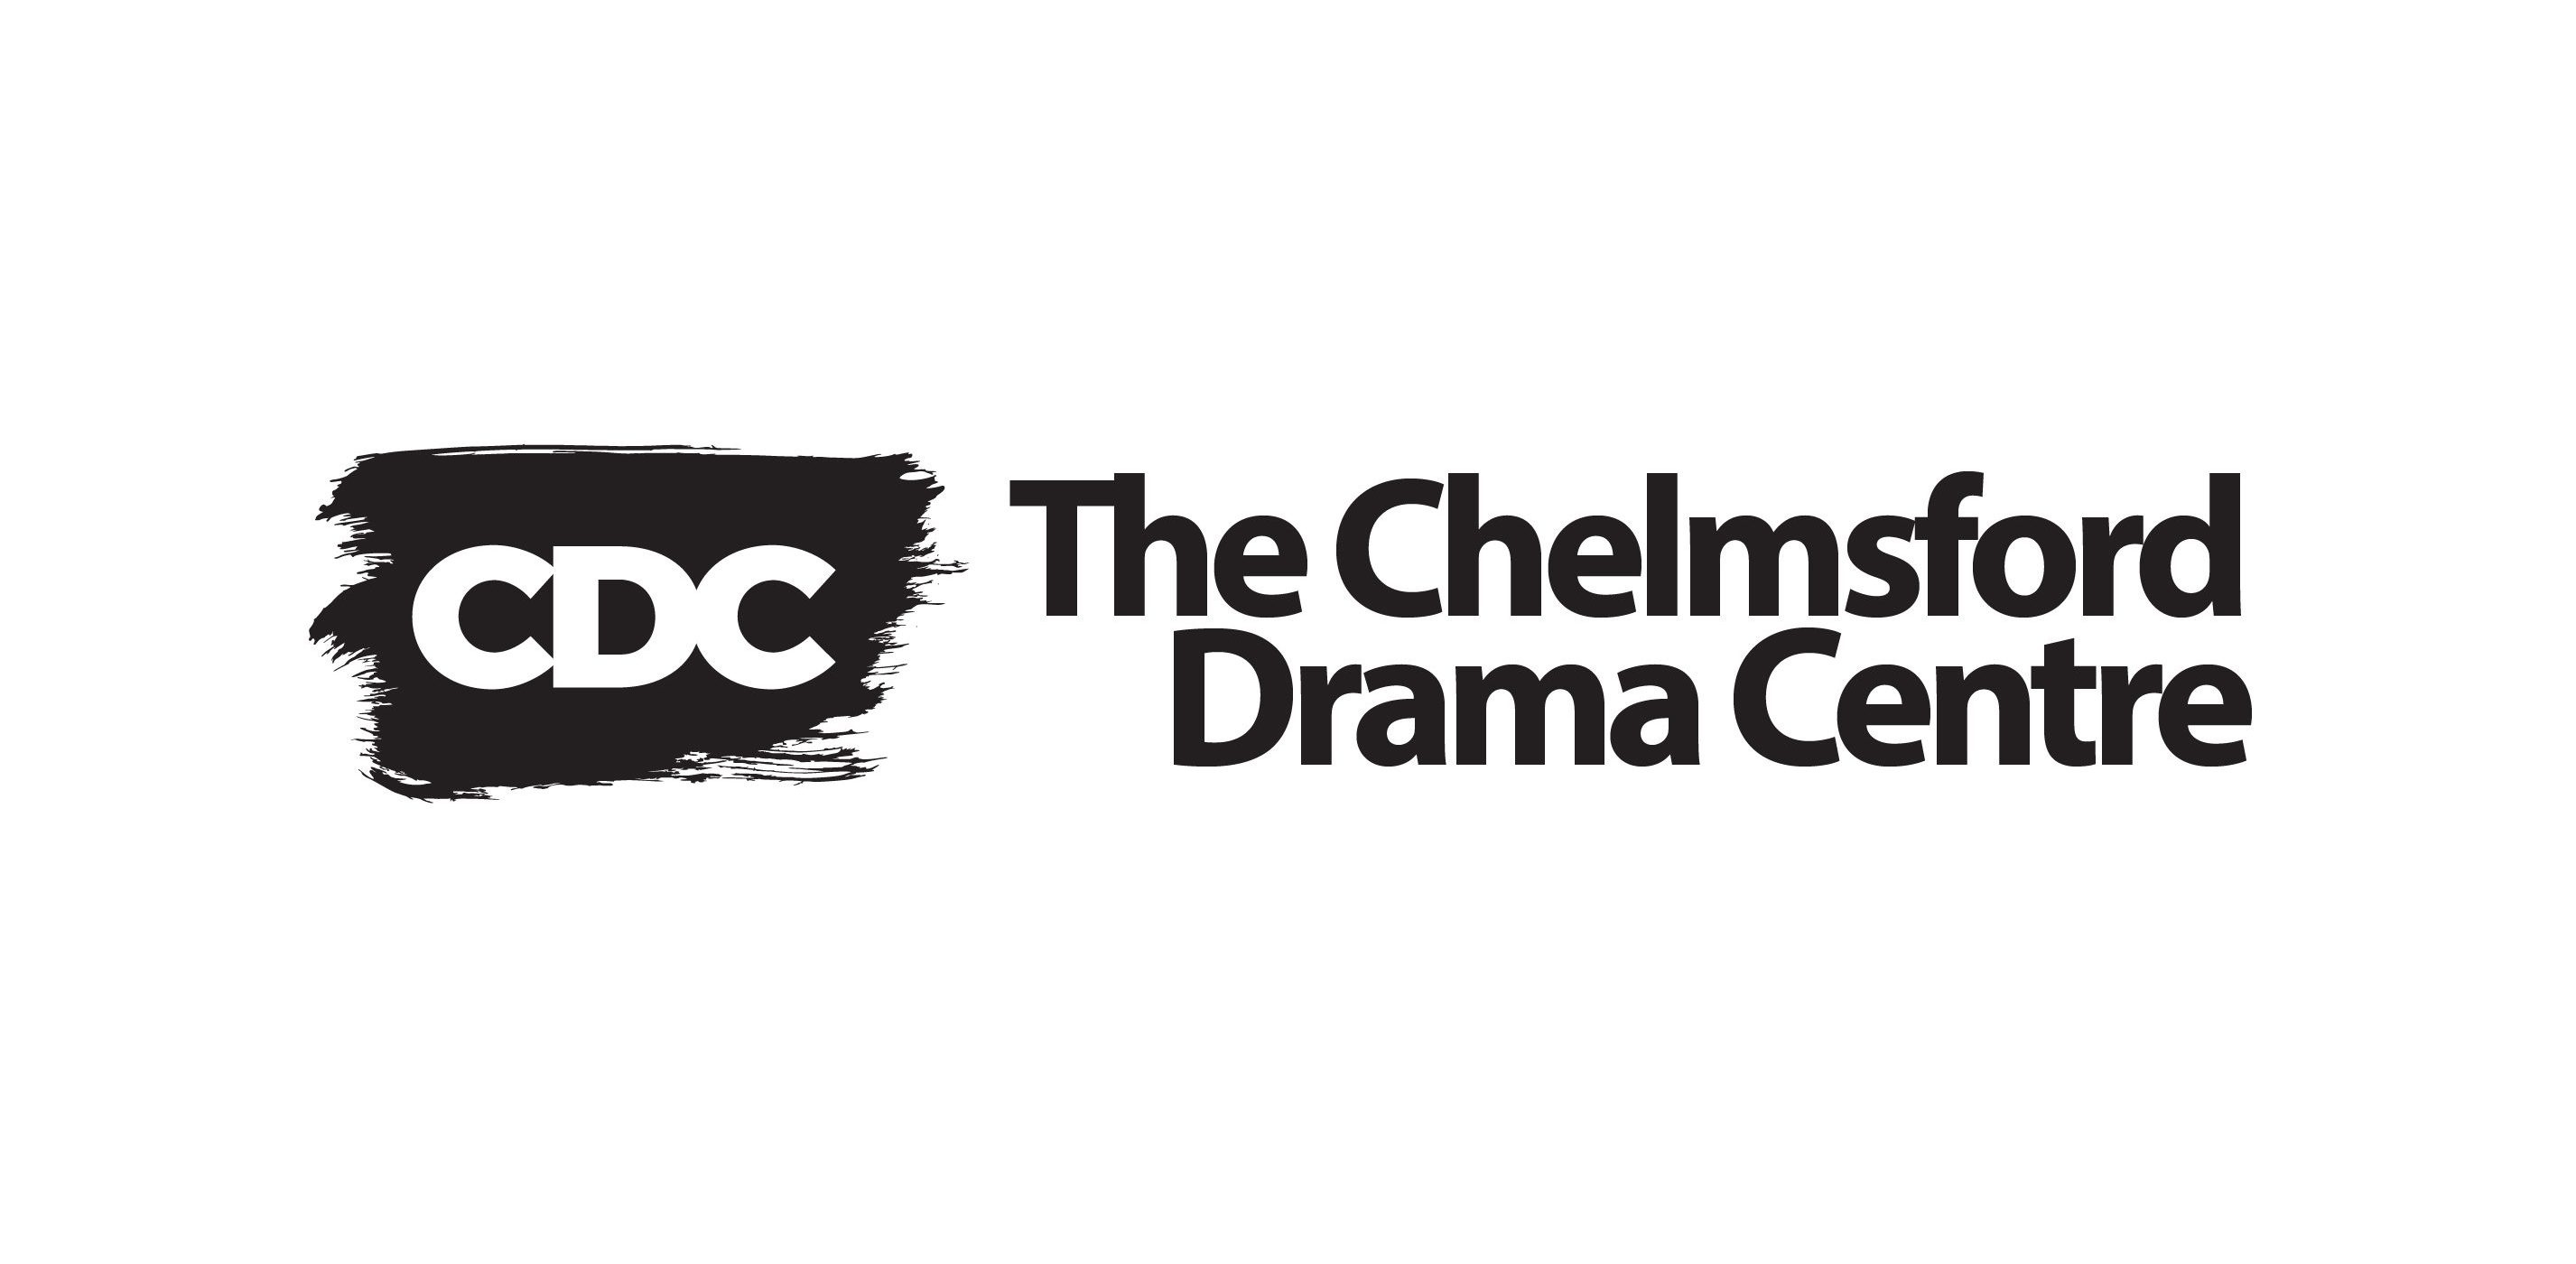 The Chelmsford Drama Centre